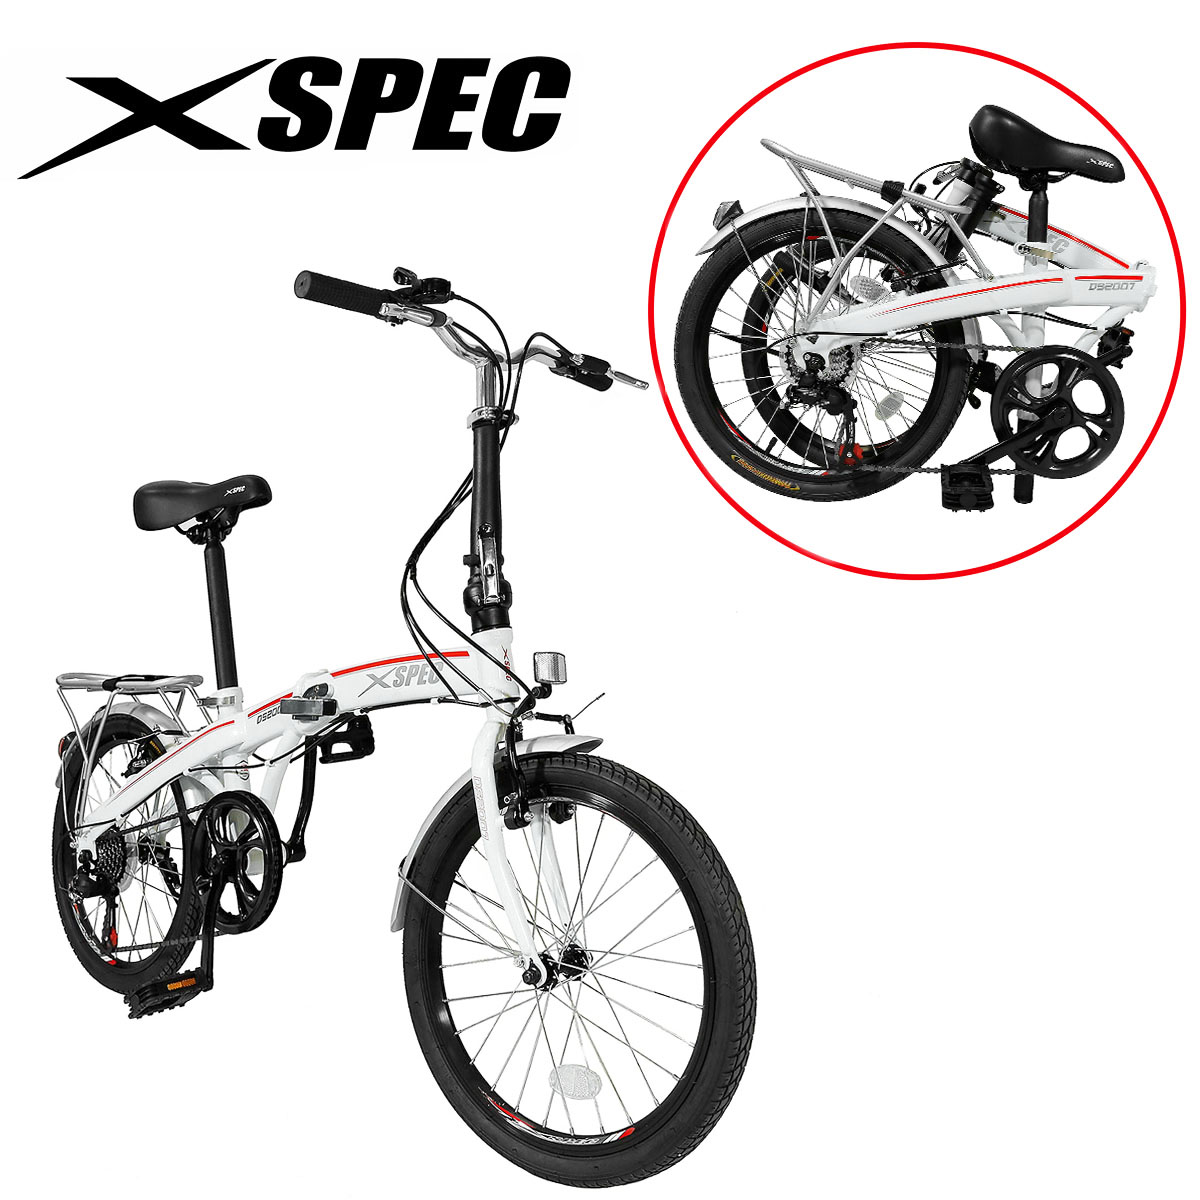 "Xspec 20"" 7 Speed City Folding Mini Compact Bike Bicycle Urban Commuter Shimano White"